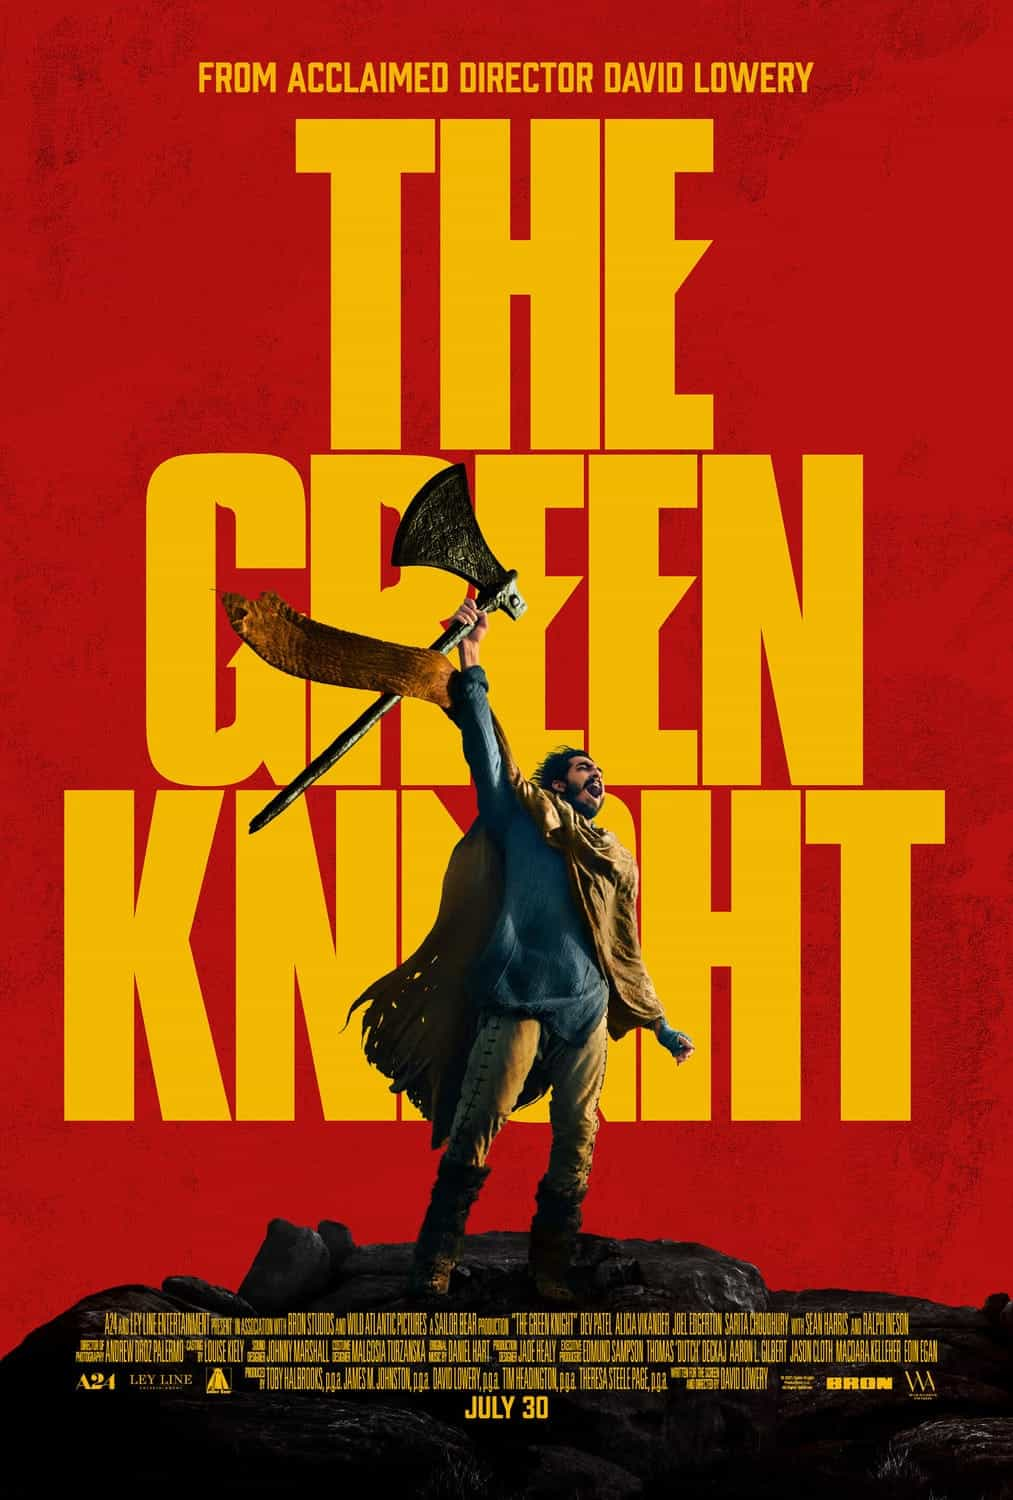 New poster released for The Green Knight starring Dev Patel - movie release date 6th August 2021